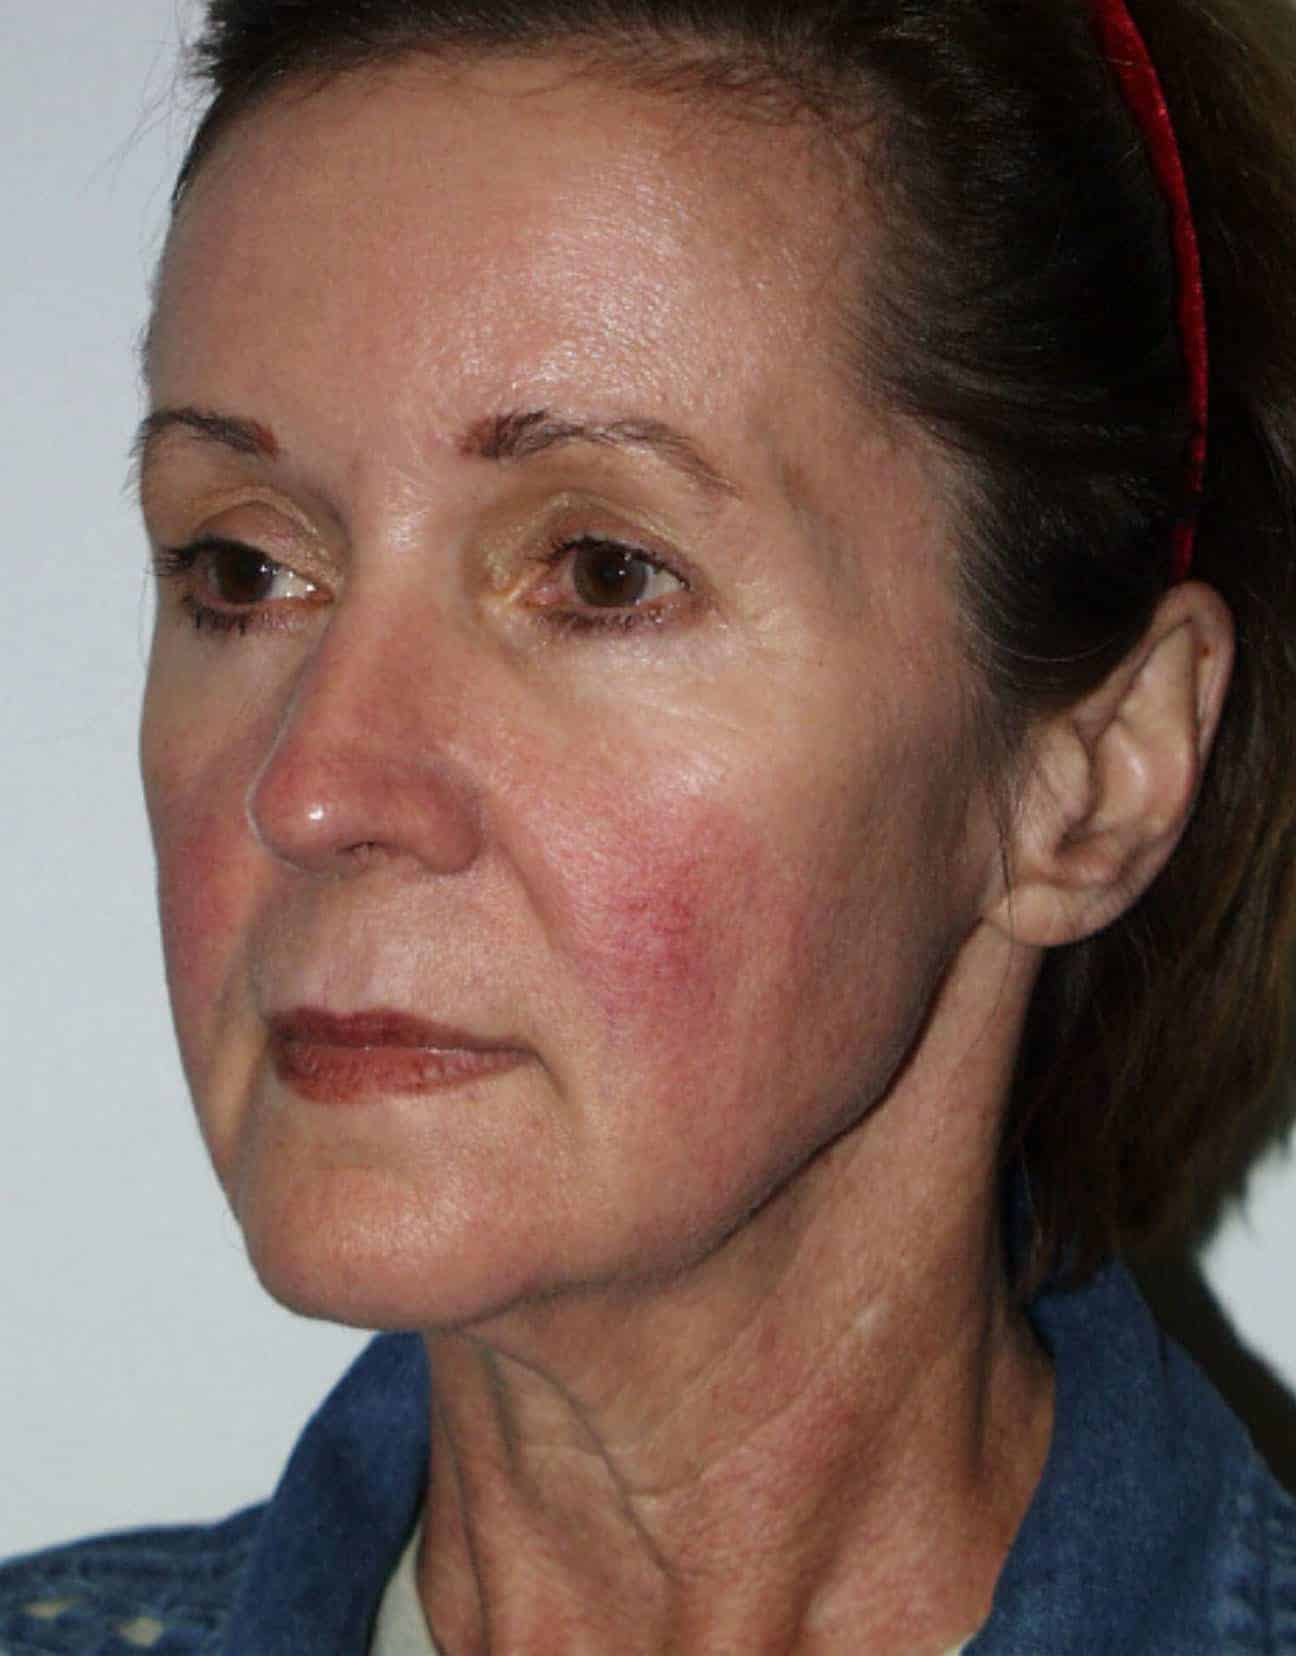 cortez facial plastic surgery facelift angle before